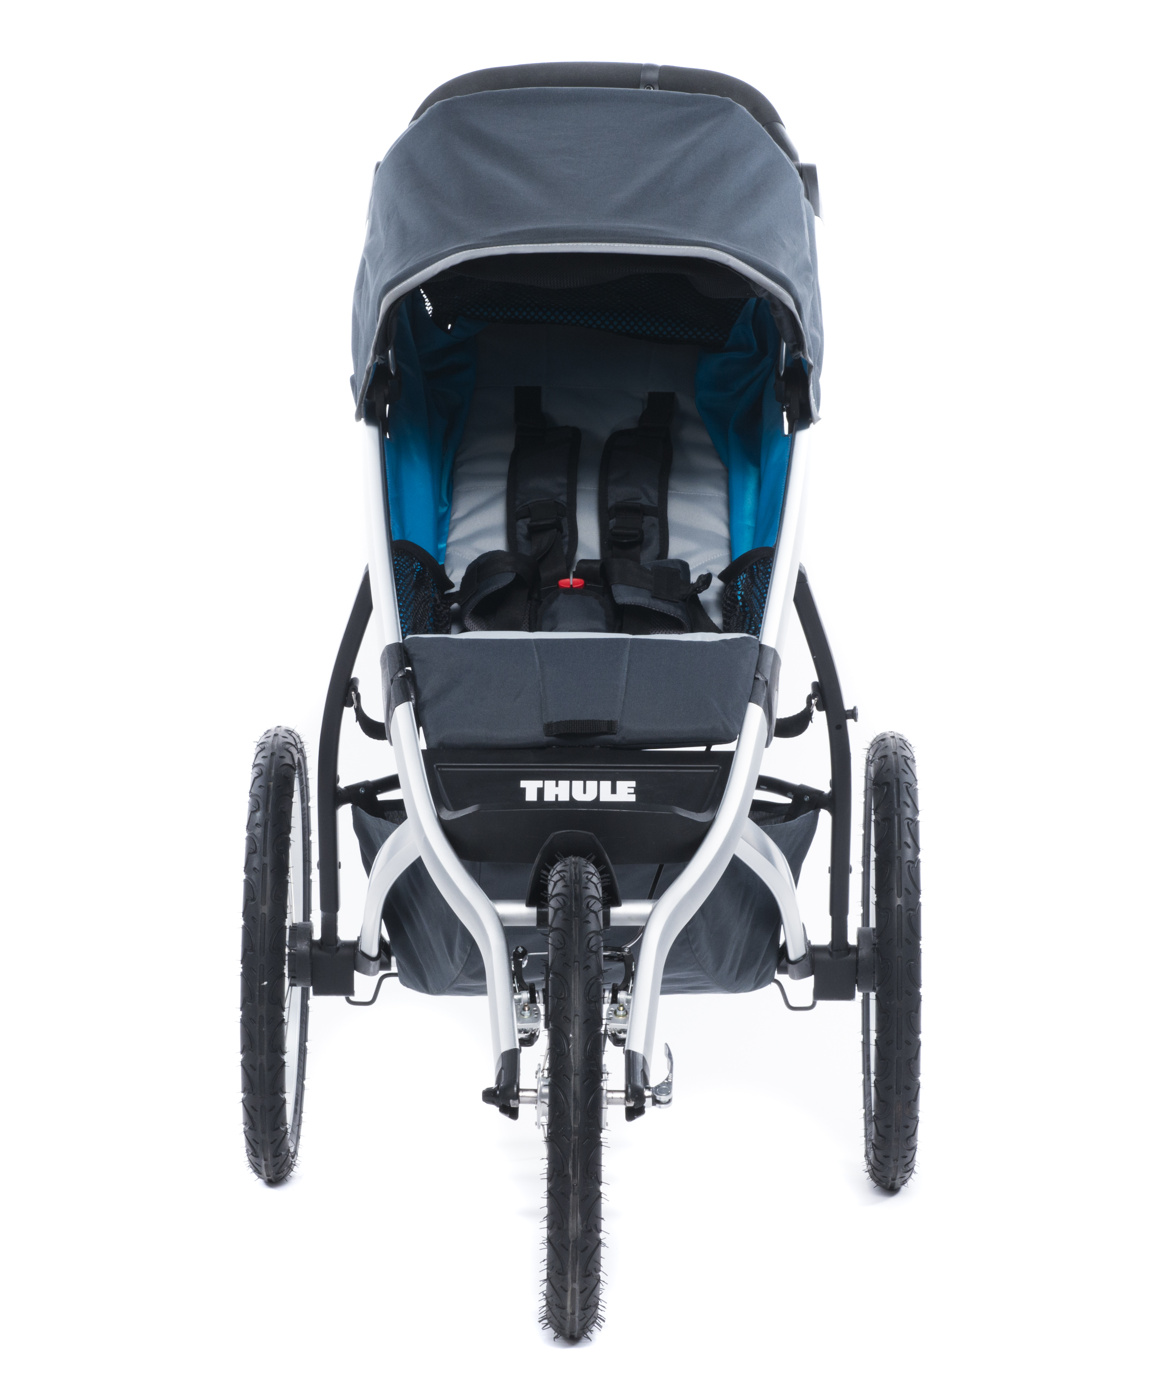 Thule_Glide_front_10101901